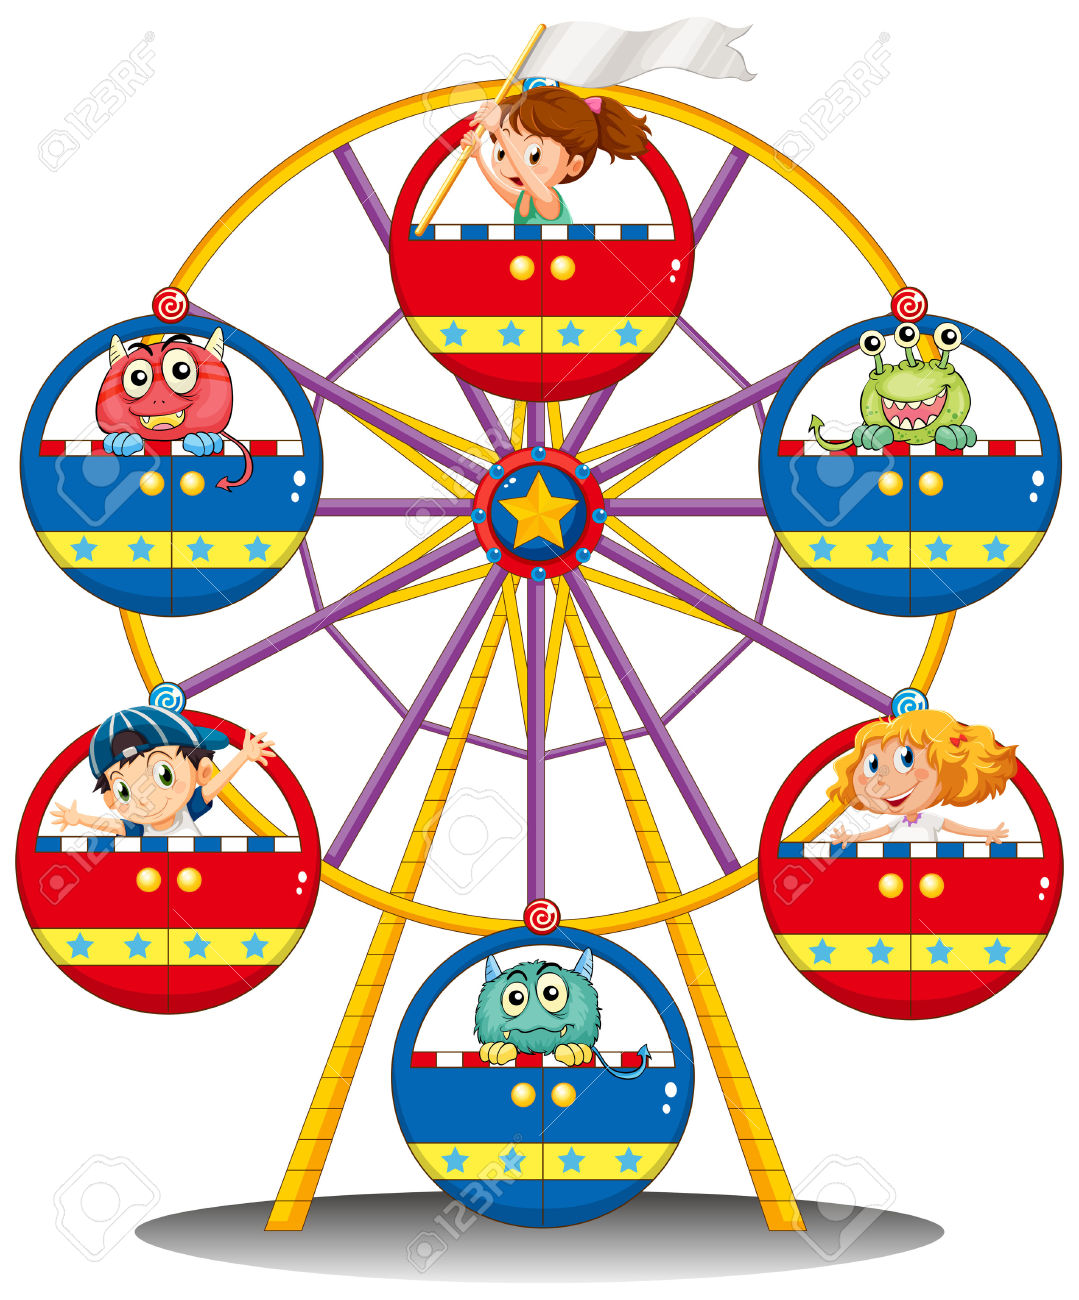 Illustration Of A Carnival Ride With Monsters And Kids On A White.